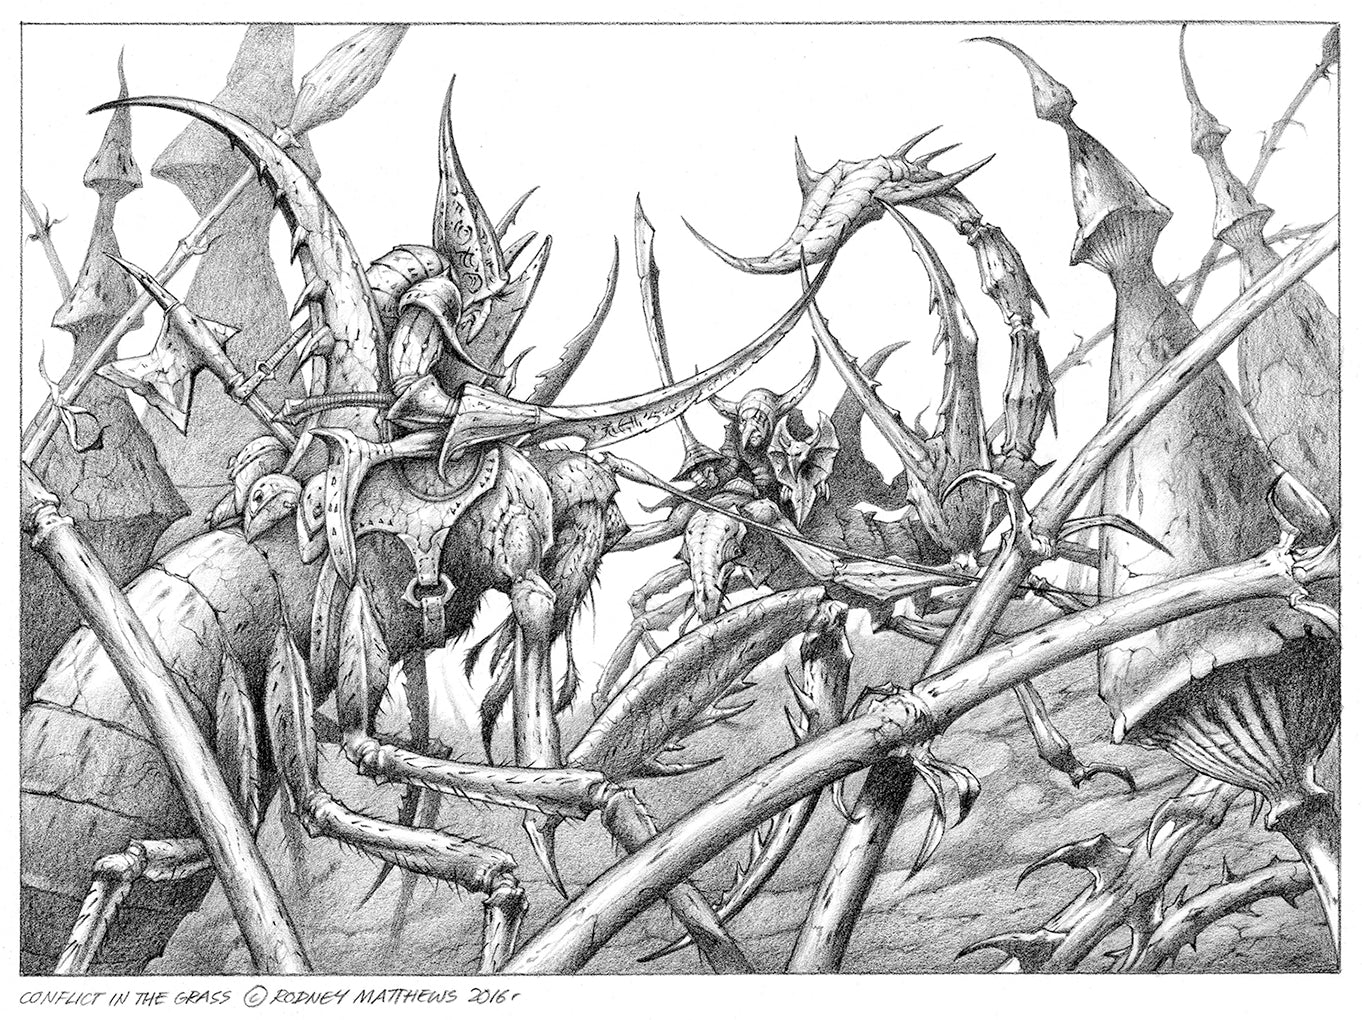 Conflict in the Grass by Rodney Matthews